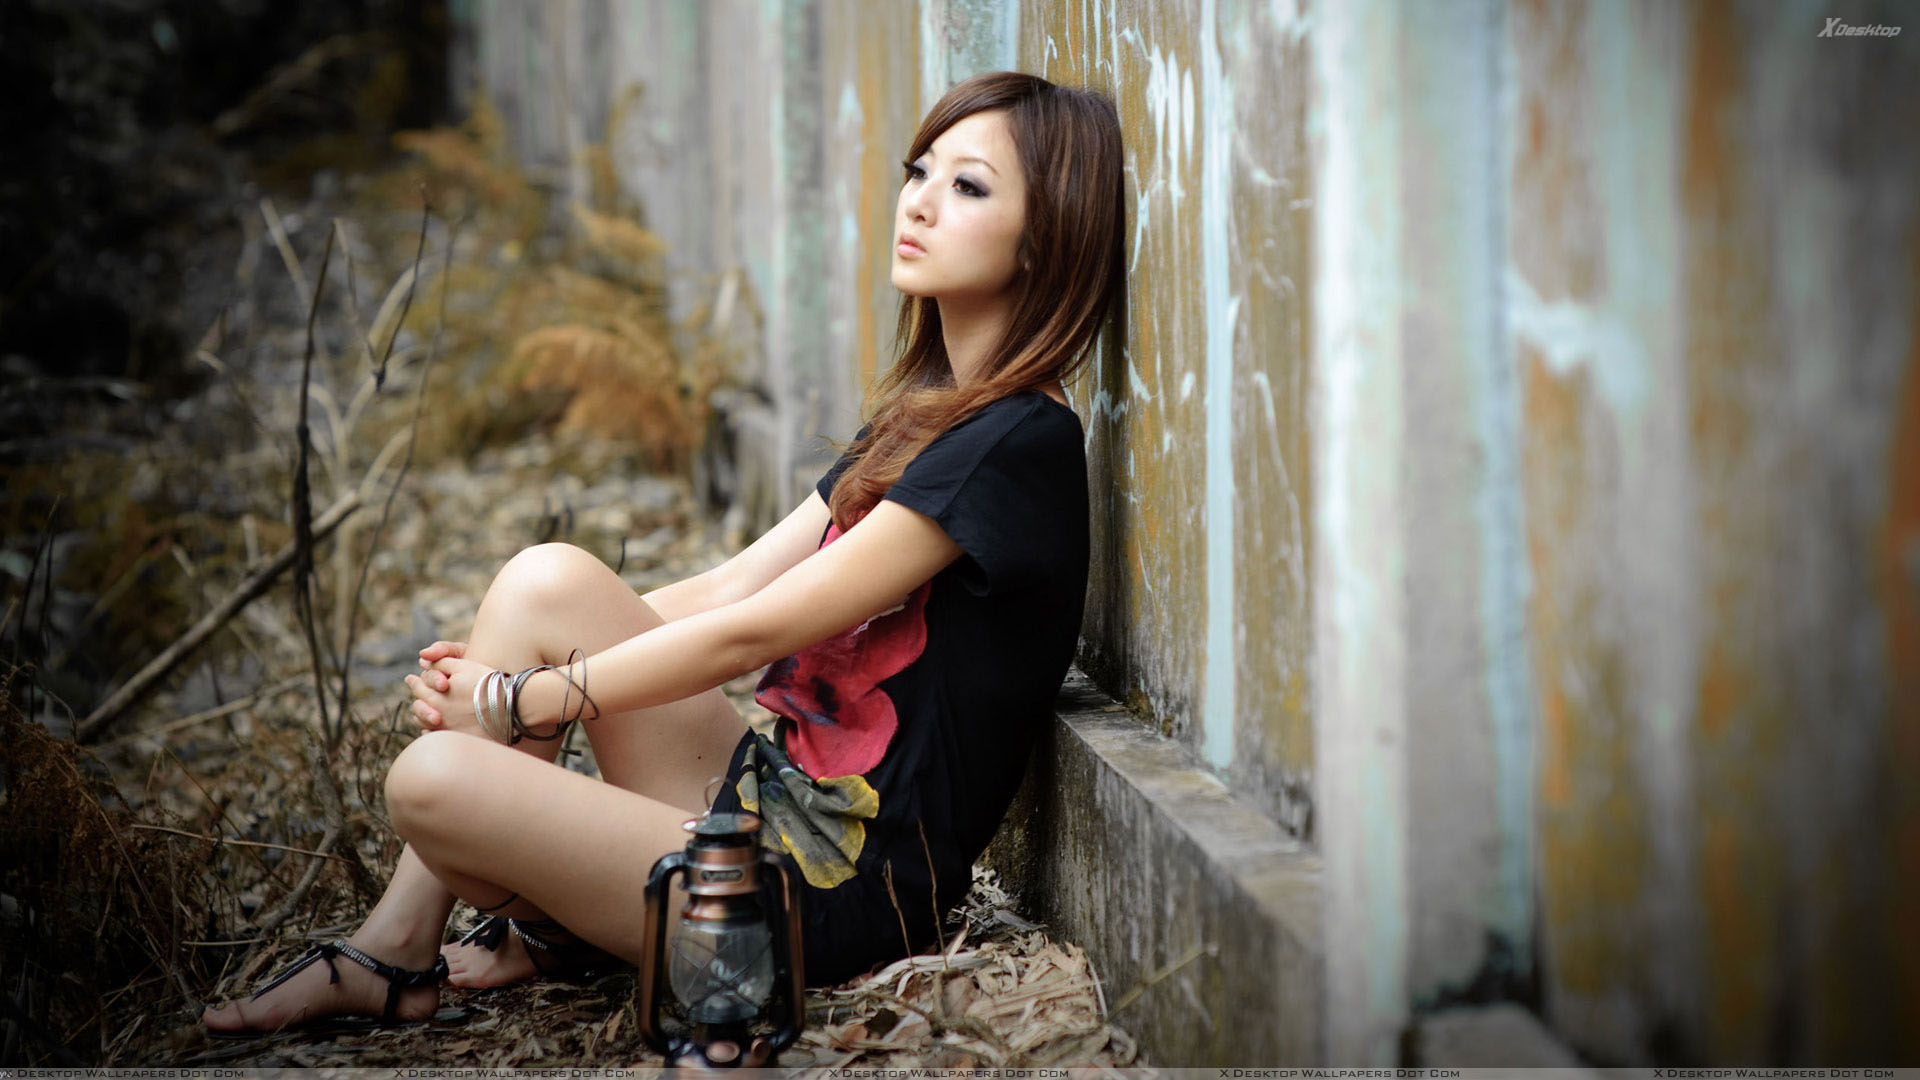 Girl Lost In Love Sitting Pose in Black Top Wallpaper